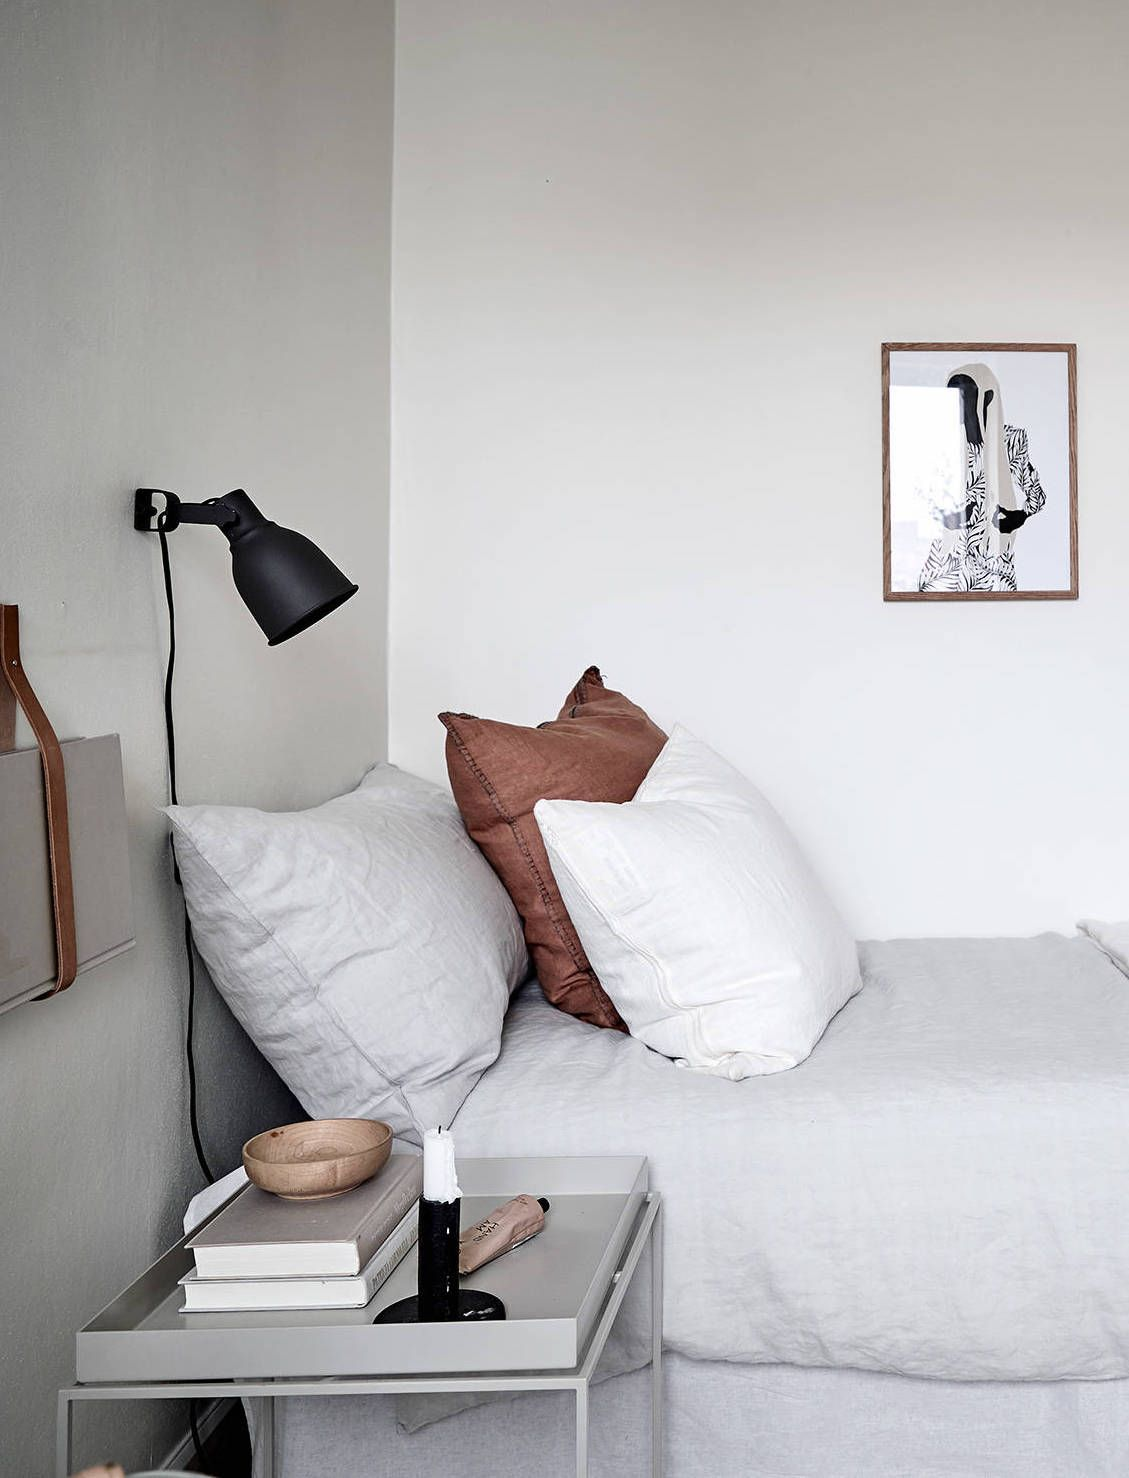 Cozy home with a vintage touch - COCO LAPINE DESIGN